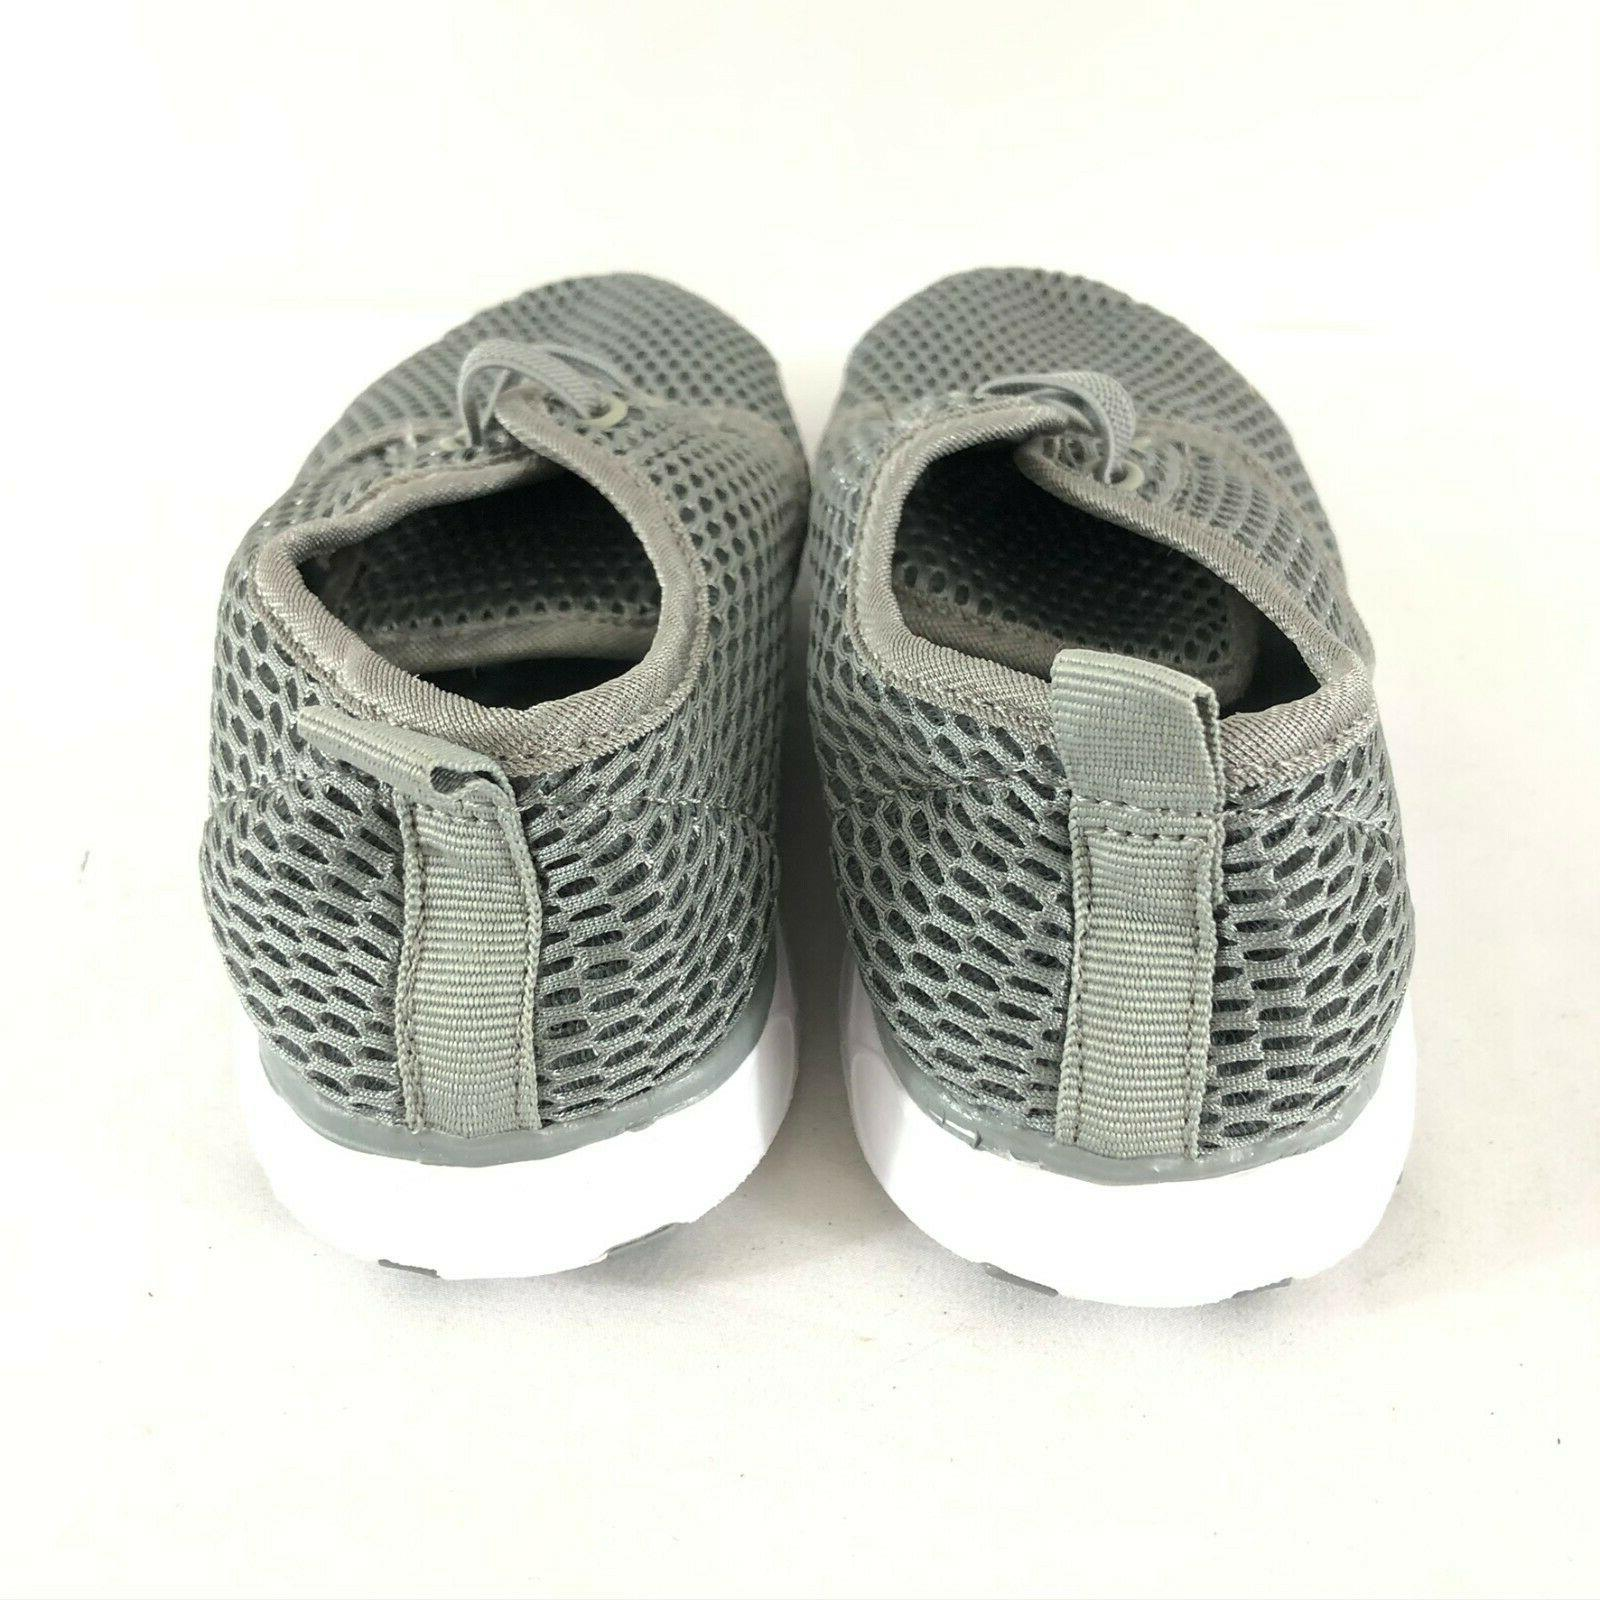 Pooluly Womens Sneakers Shoes Fabric On US